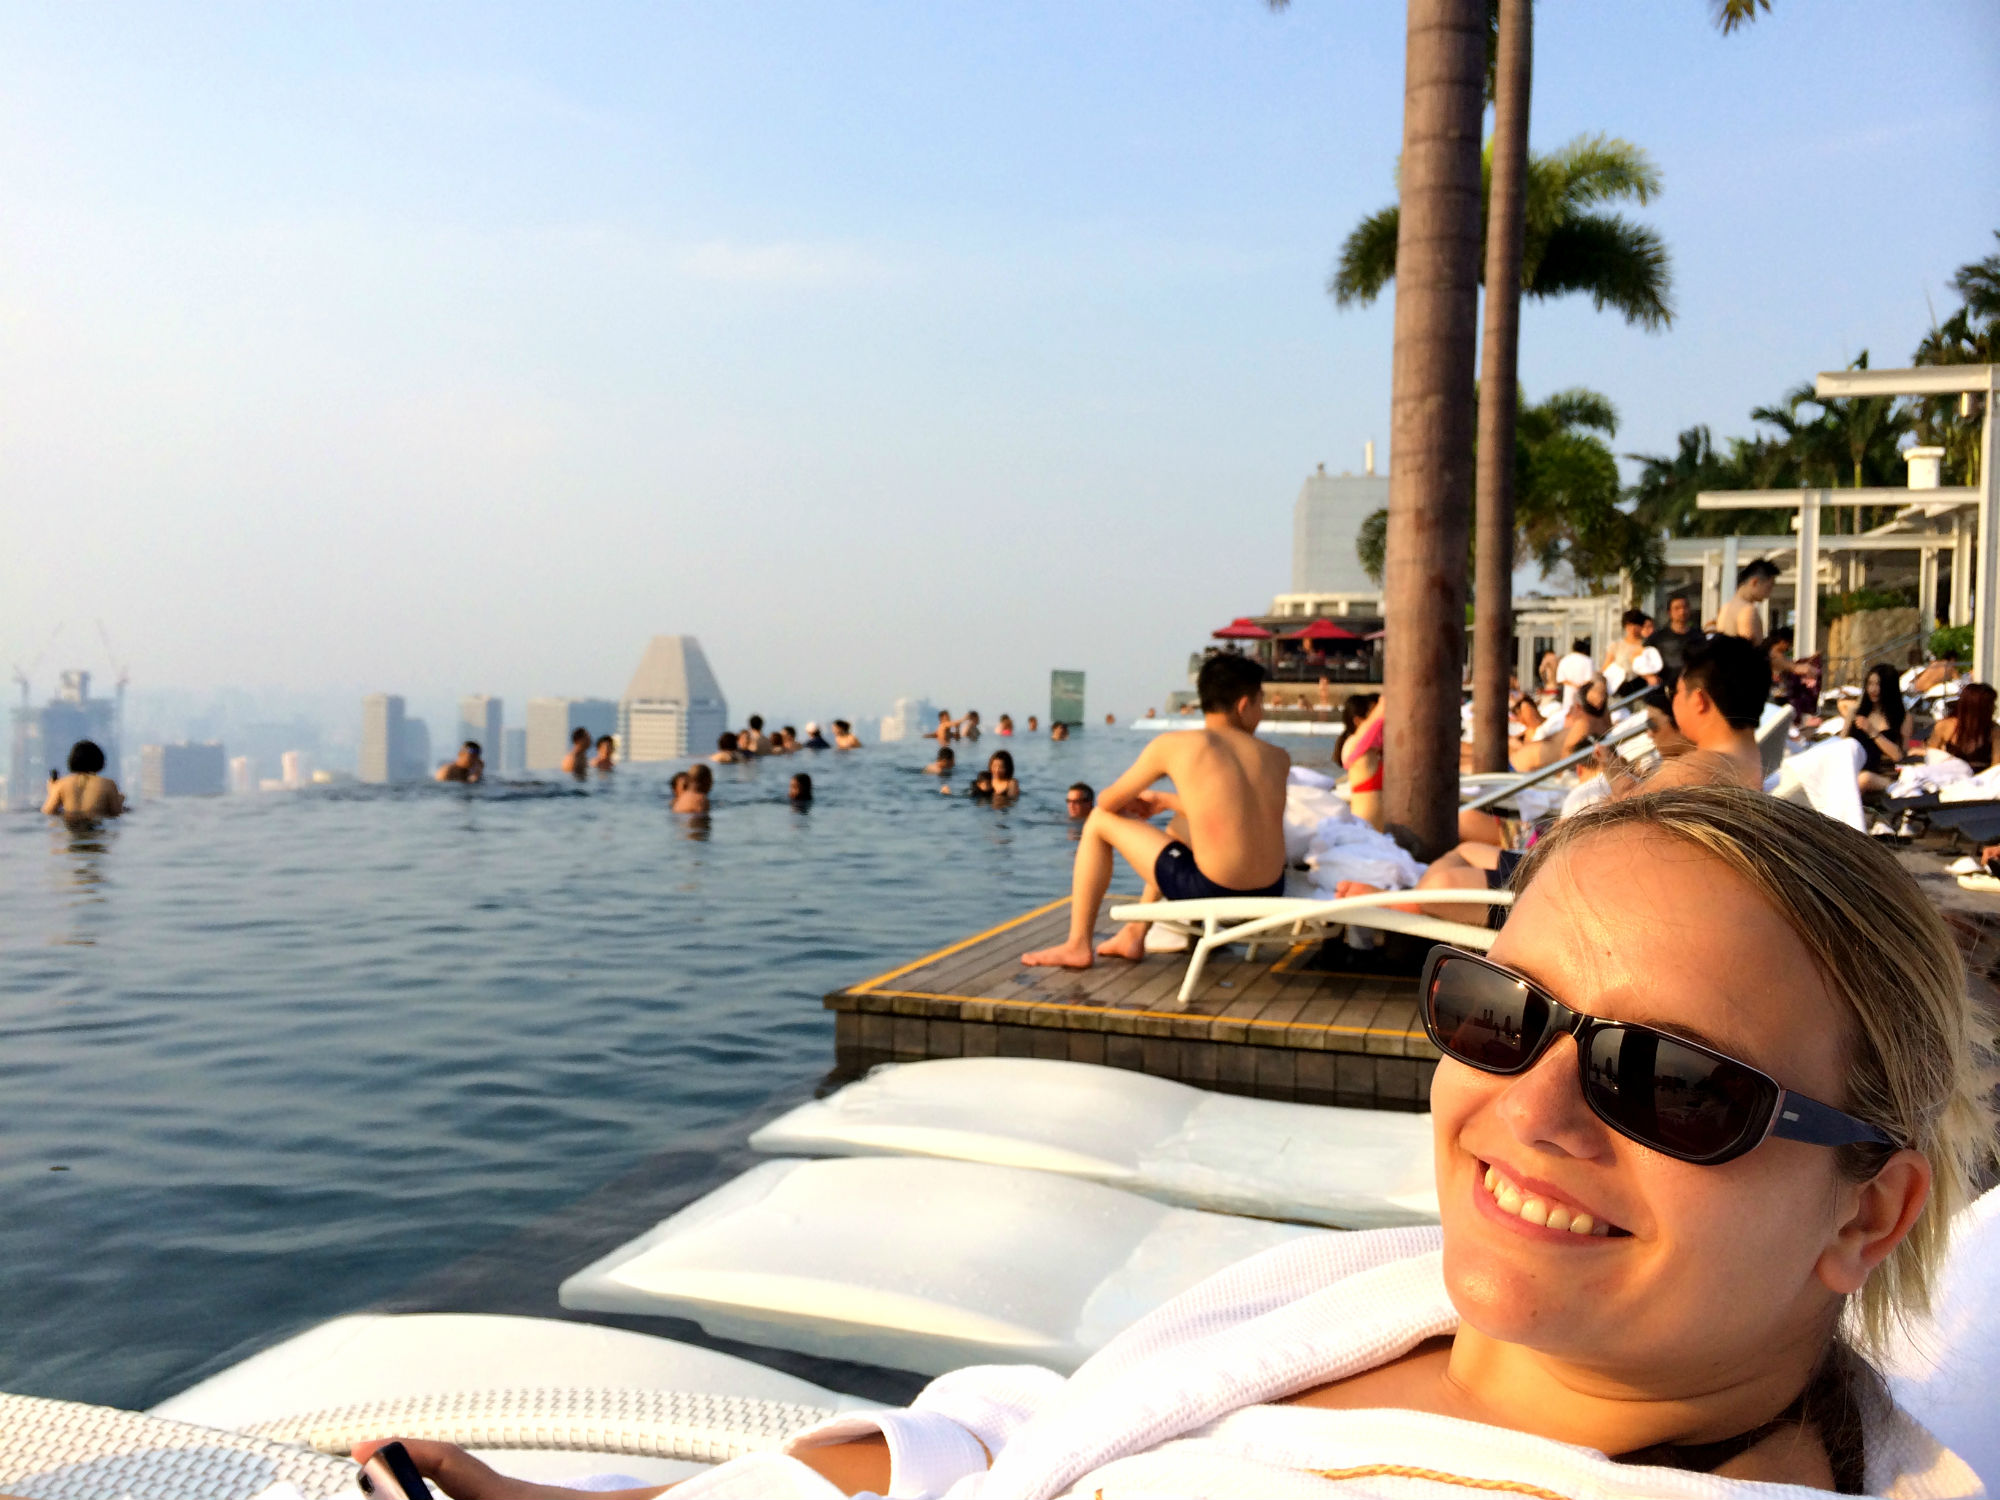 Me at the Infinity Pool, Marina Bay Sands